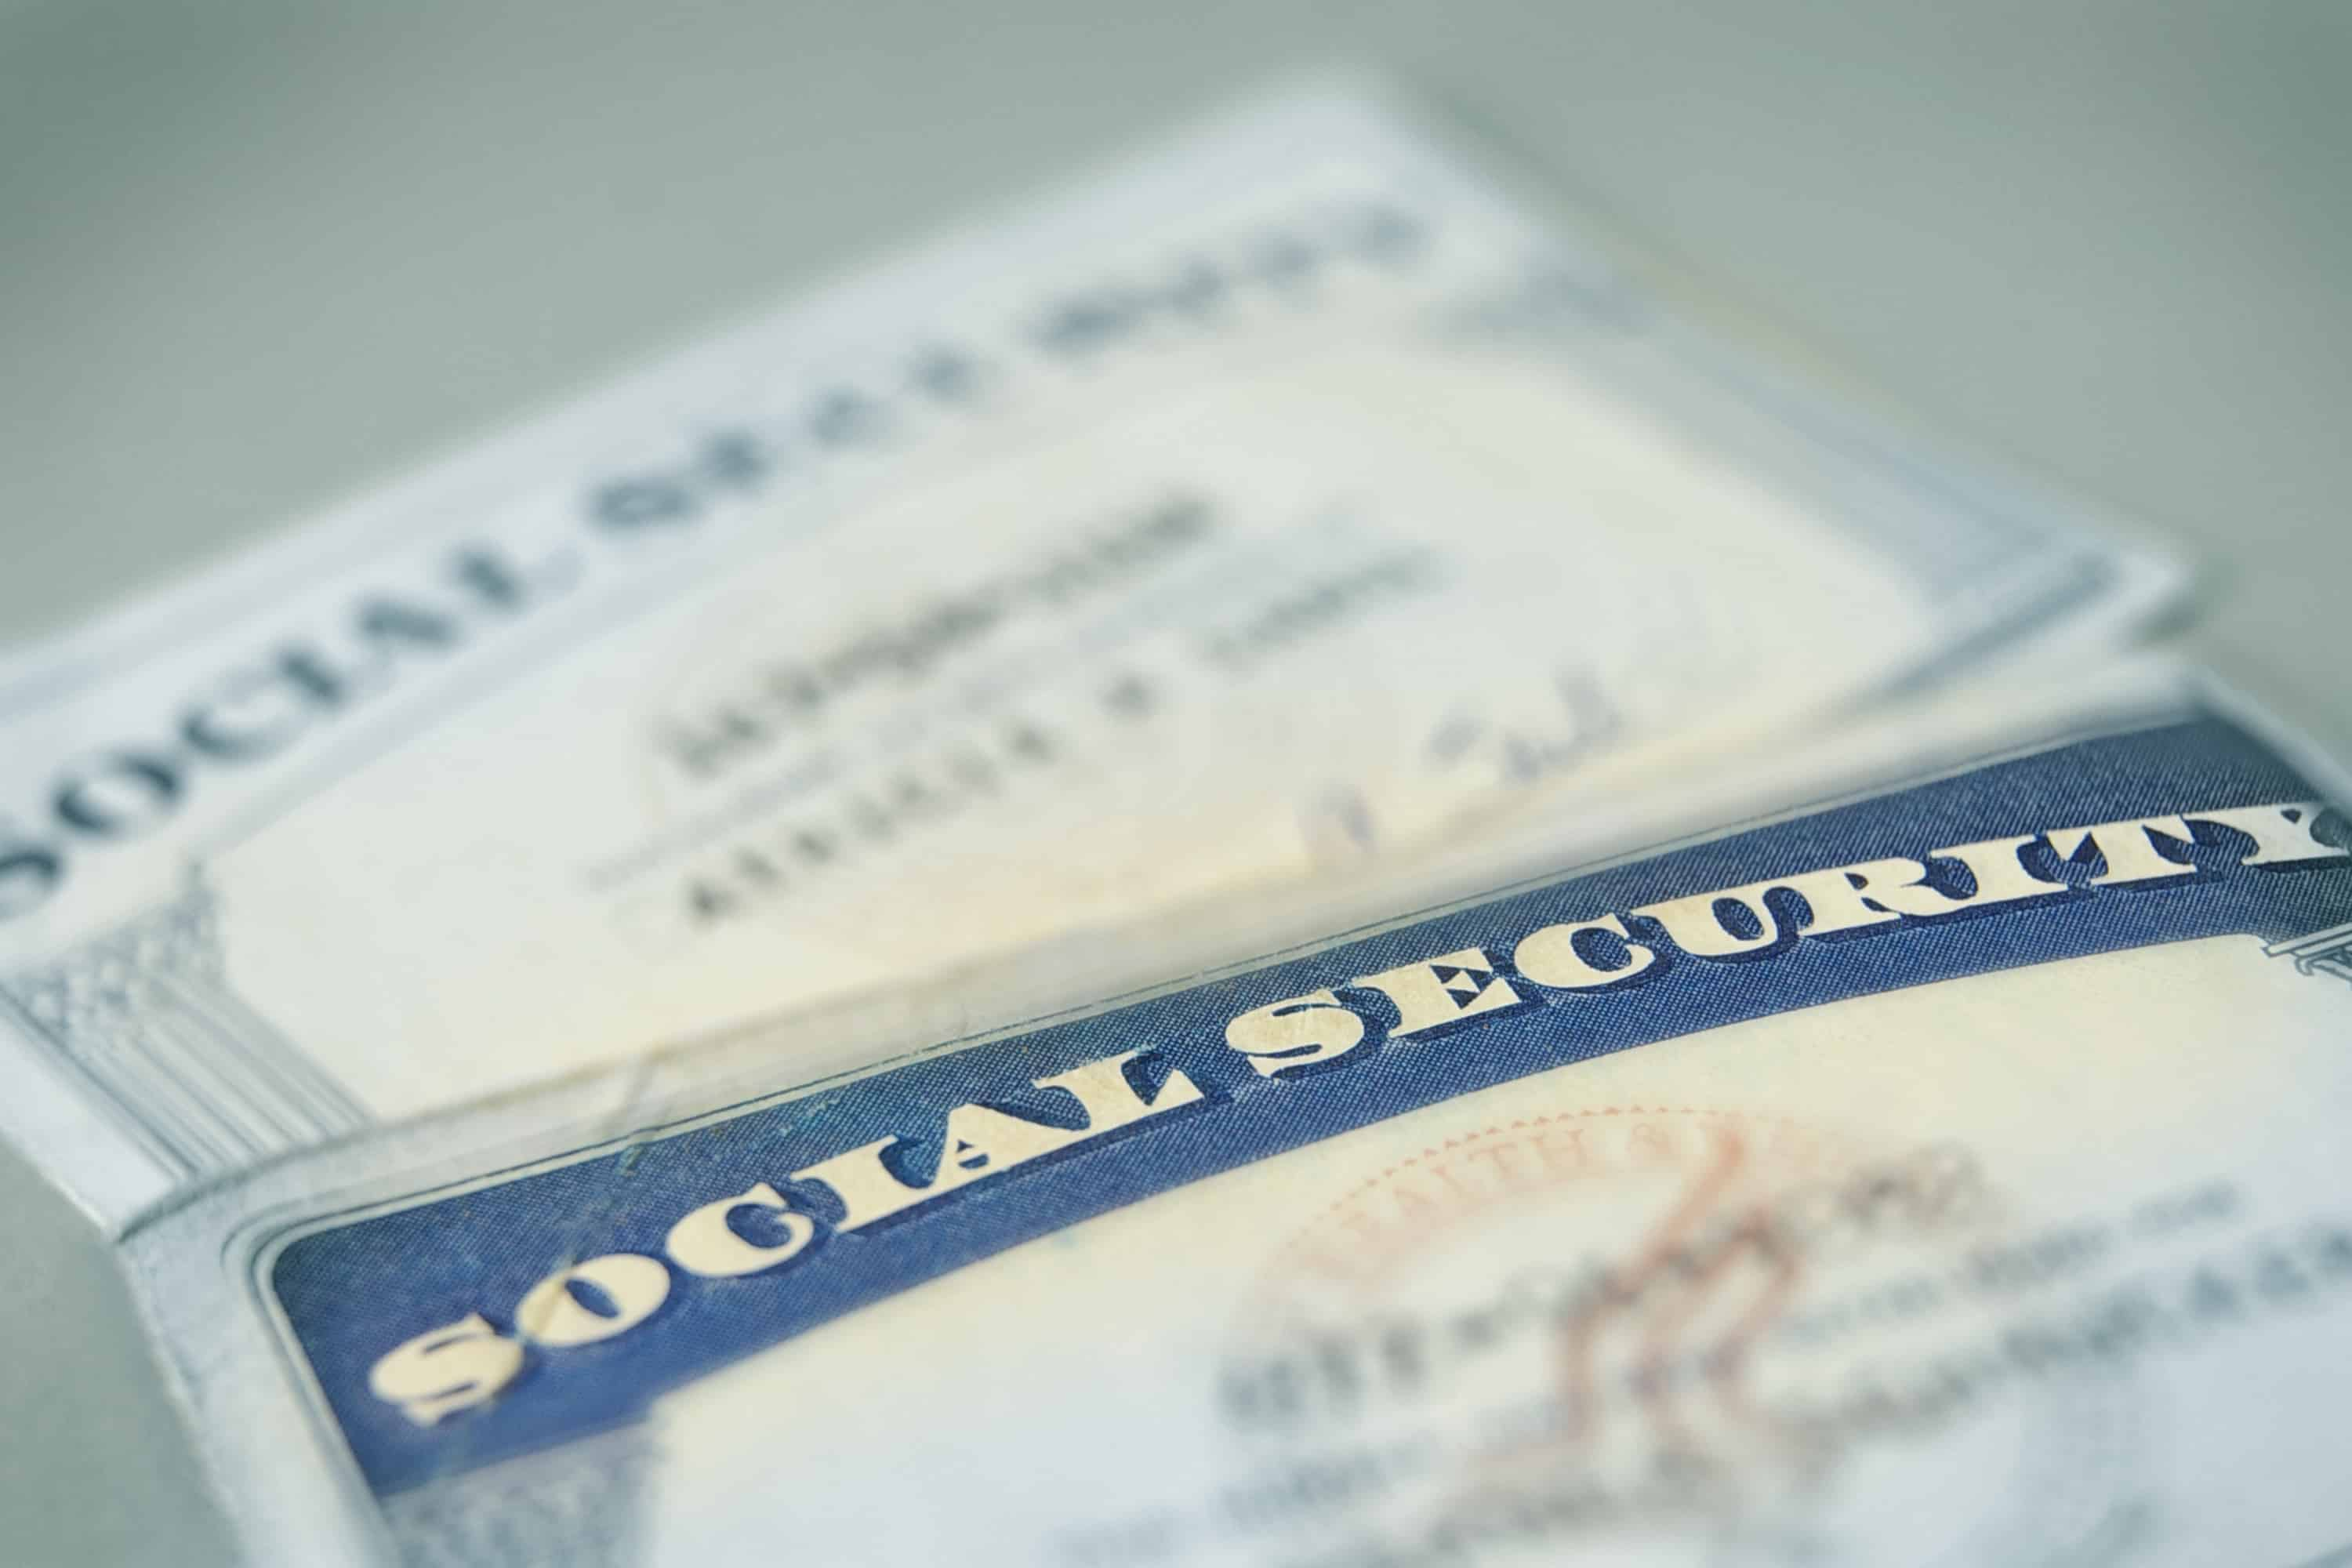 How to change your name on social security card in texas